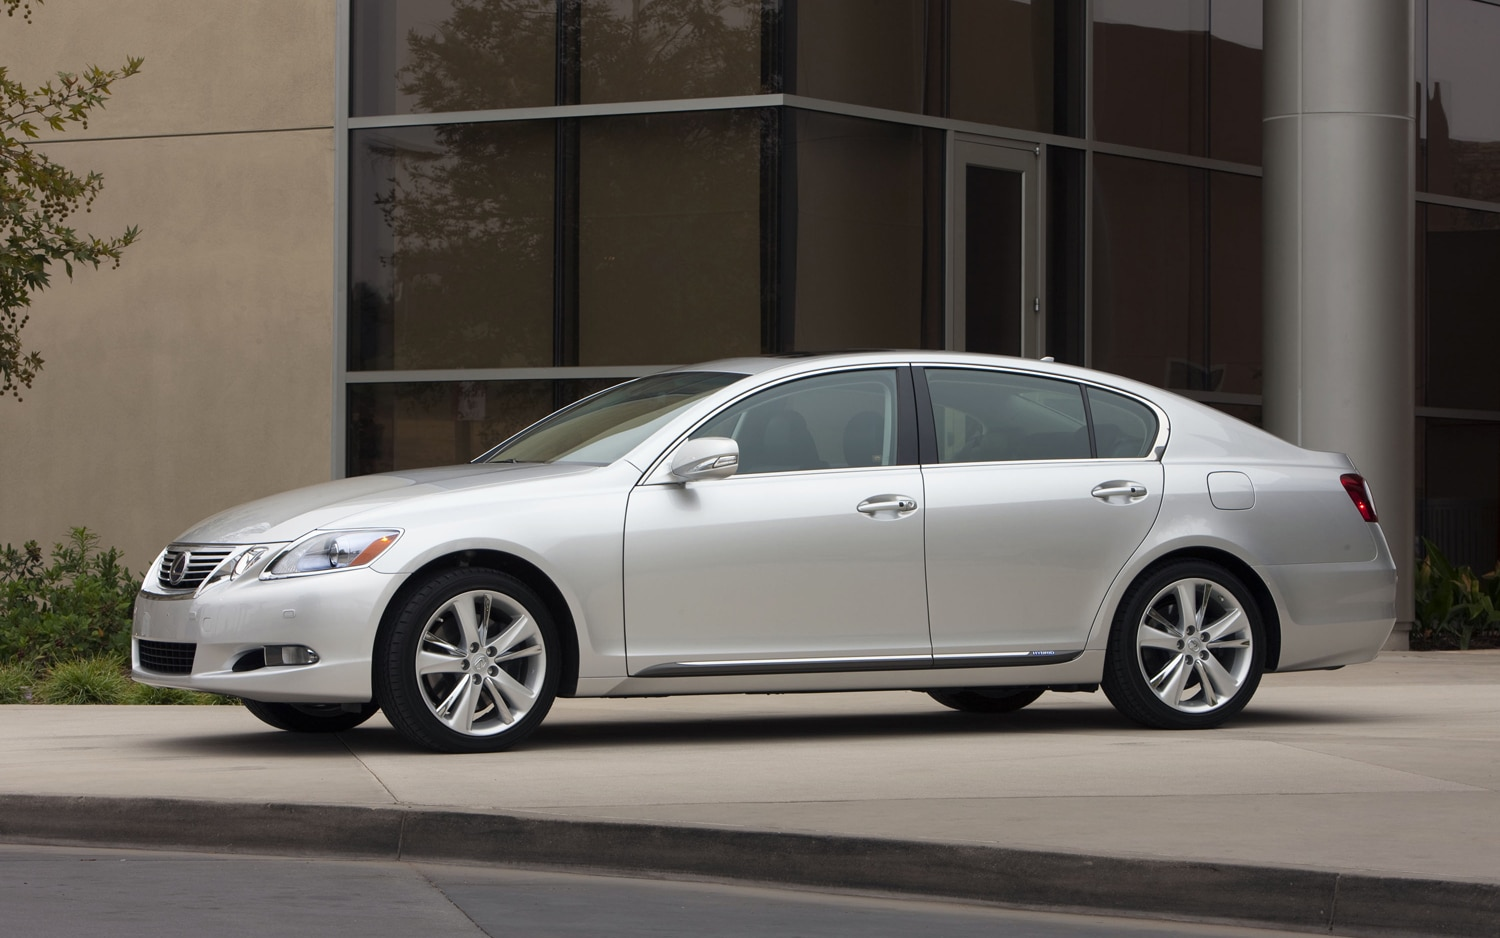 frankfurt 2011 lexus gs450h hybrid unveiled. Black Bedroom Furniture Sets. Home Design Ideas